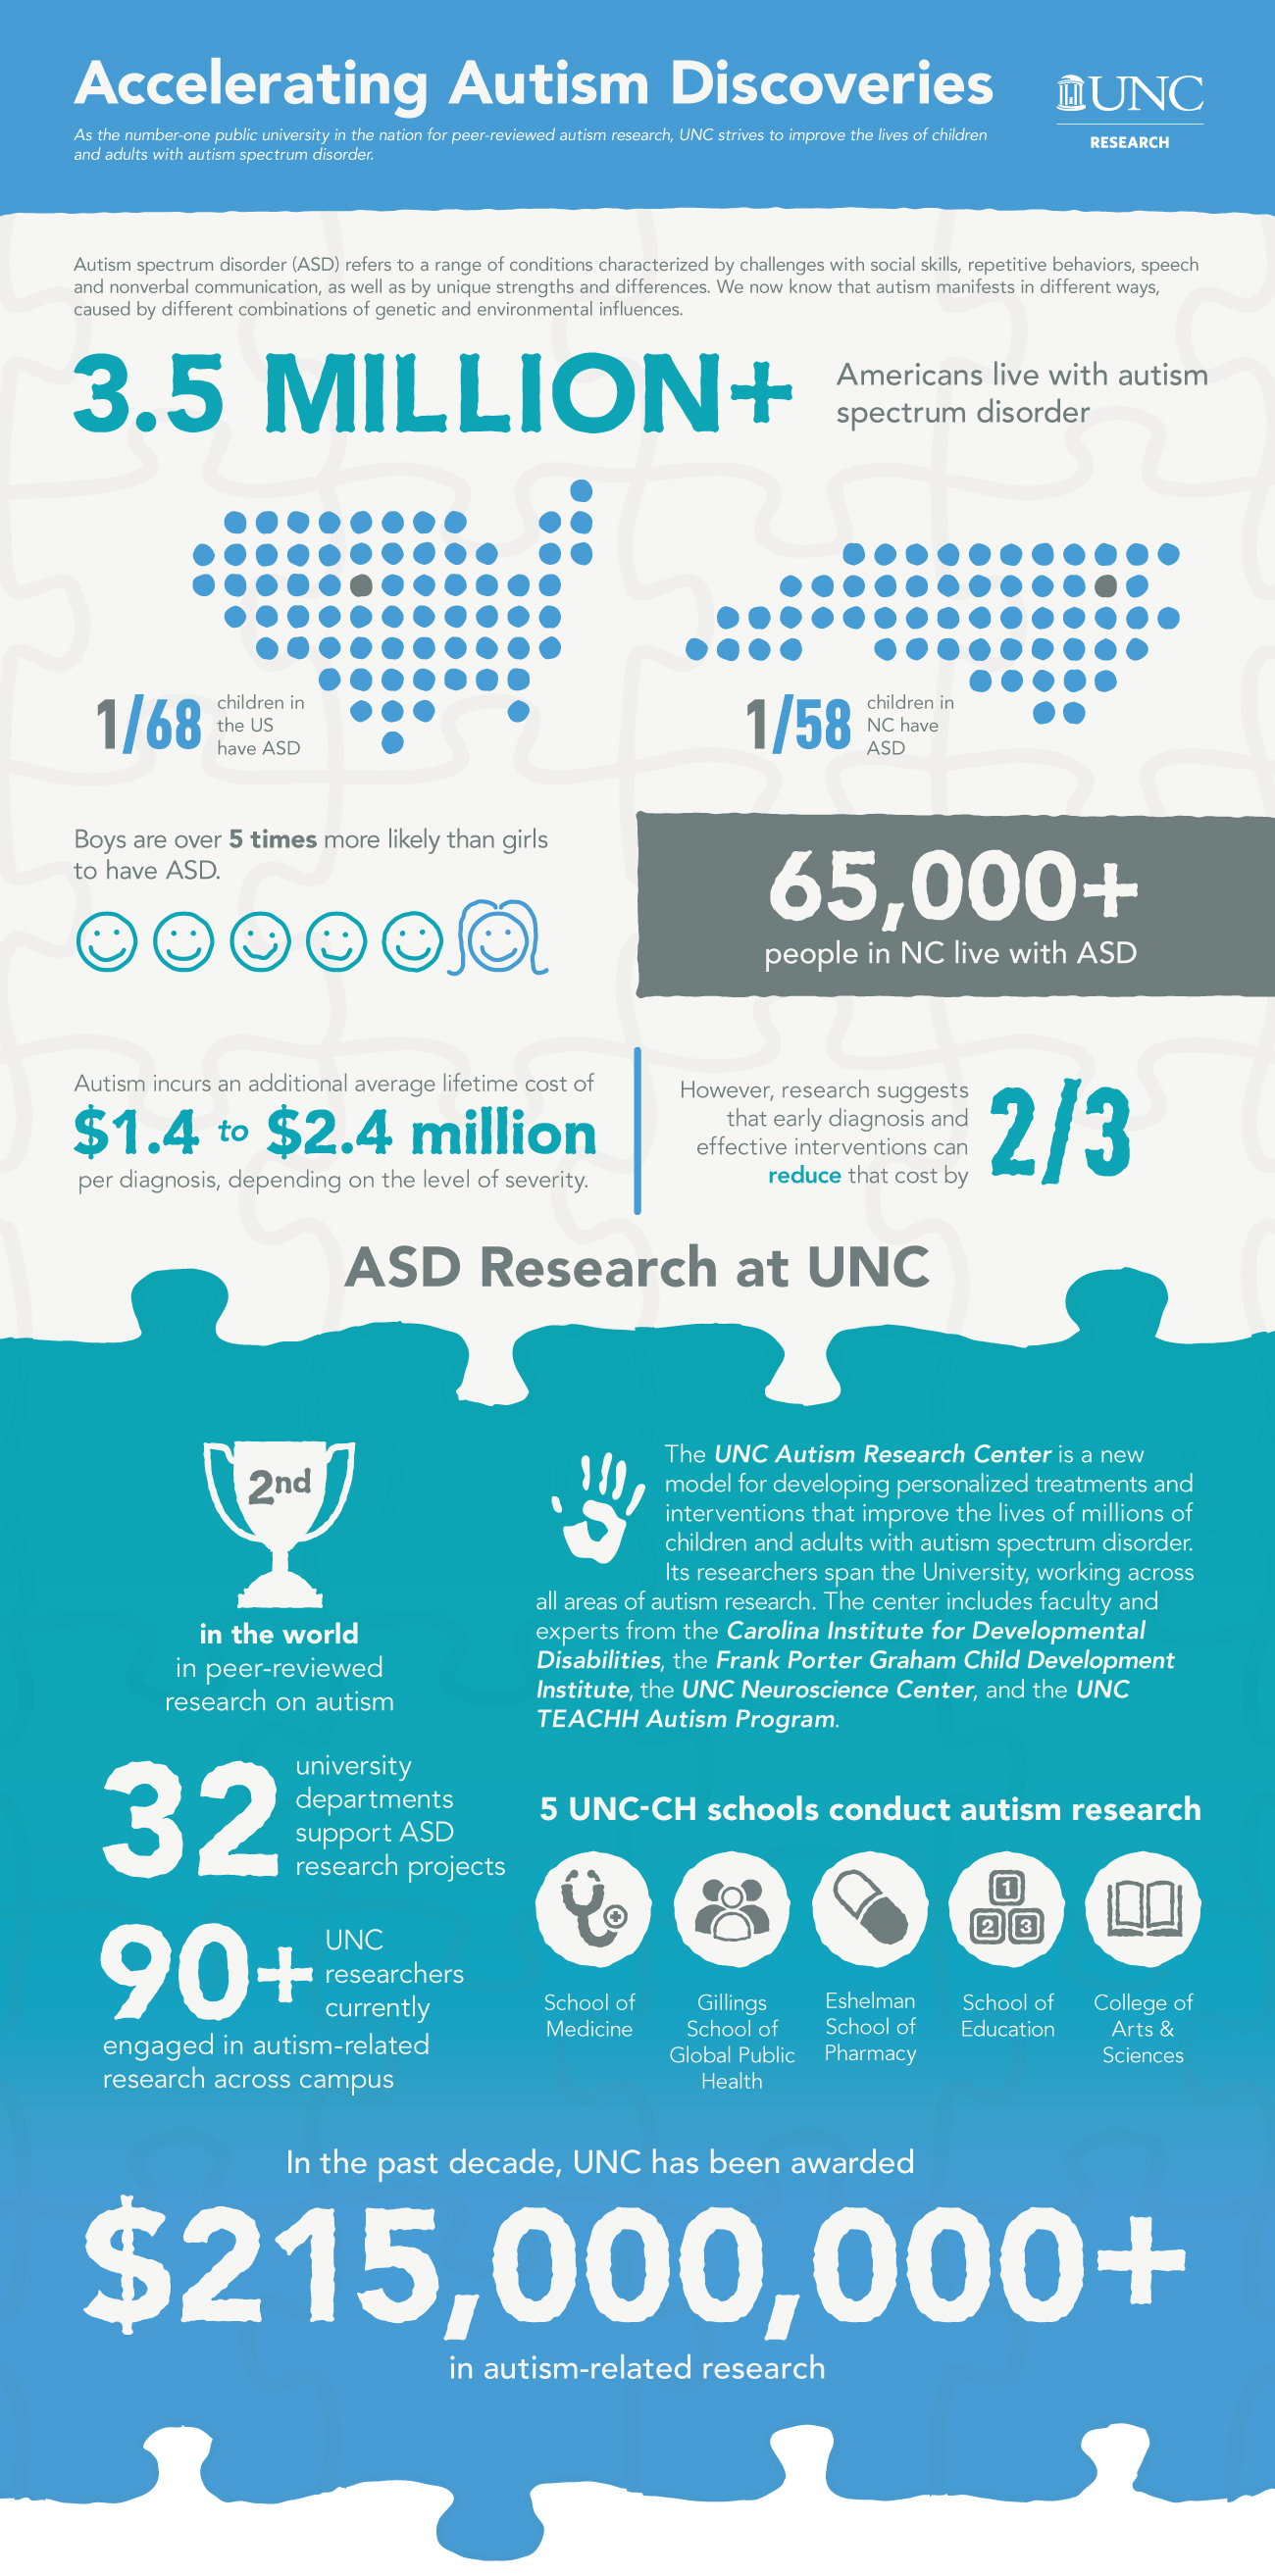 """UNC Autism Research Infographic titled """"Accelerating Autism Discoveries."""" As the number-one public university in the nation for peer-reviewed autism research, UNC strives to improve the lives of children and adults with autism spectrum disorder. Autism spectrum disorder ( also known as ASD) refers to a range of conditions characterized by challenges with social skills, repetitive behaviors, speech and nonverbal communication, as well as by unique strengths and differences. We now know that autism manifests in different ways, caused by different combinations of genetic and environmental influences. 3.5 million plus Americans live with autism spectrum disorder. 1 in 68 children in the US have ASD. 1 in 58 children in North Carolina have ASD. Boy are over 5 times more likely than girls to have ASD. 65,000 plus people in North Carolina live with ASD. Autism incurs an additional average lifetime cost of 1.4 million to 2.4 million dollars per per diagnosis, depending on the level of severity. However, research suggests that early diagnosis and effective interventions can reduce that cost by two-thirds. New section, """"ASD Research at UNC."""" UNC is second in the world in peer-reviewed research on autism. 32 university departments support ASD research projects at UNC. 90 plus UNC researchers are currently engaged in autism-related research across campus. The UNC Autism Research Center is a new model for developing personalized treatments and interventions that improve the lives of millions of children and adults with autism spectrum disorder. Its researchers span the University, working across all areas of autism research. The center includes: the Carolina Institute for Developmental Disabilities, the Frank Porter Graham Child Development Institute, the UNC Neuroscience Center, and the UNC TEACHH Autism Program. 5 UNC-CH schools conduct autism research: The School of Medicine, Gillings School of Global Public Health, Eshelman School of Pharmacy, School of Education, and Colleg"""